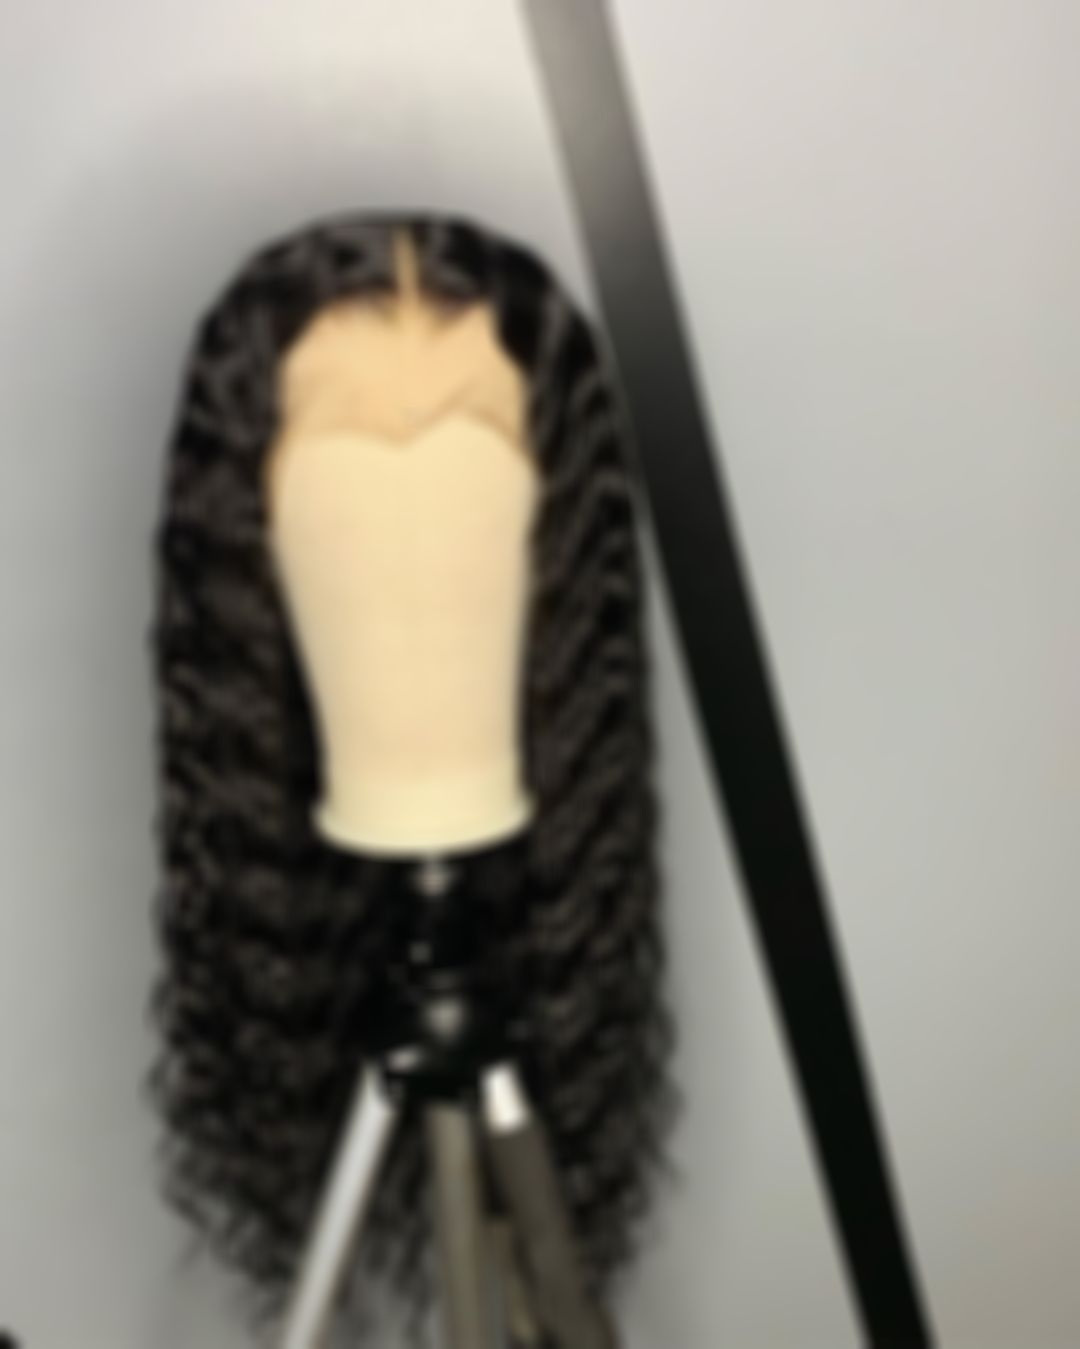 Curly Wigs Lace Front Curly Hair Black Hair Red Curly Hair 16 18 20 Inch Weave 3A Curly Hair Indu Gold Wigs